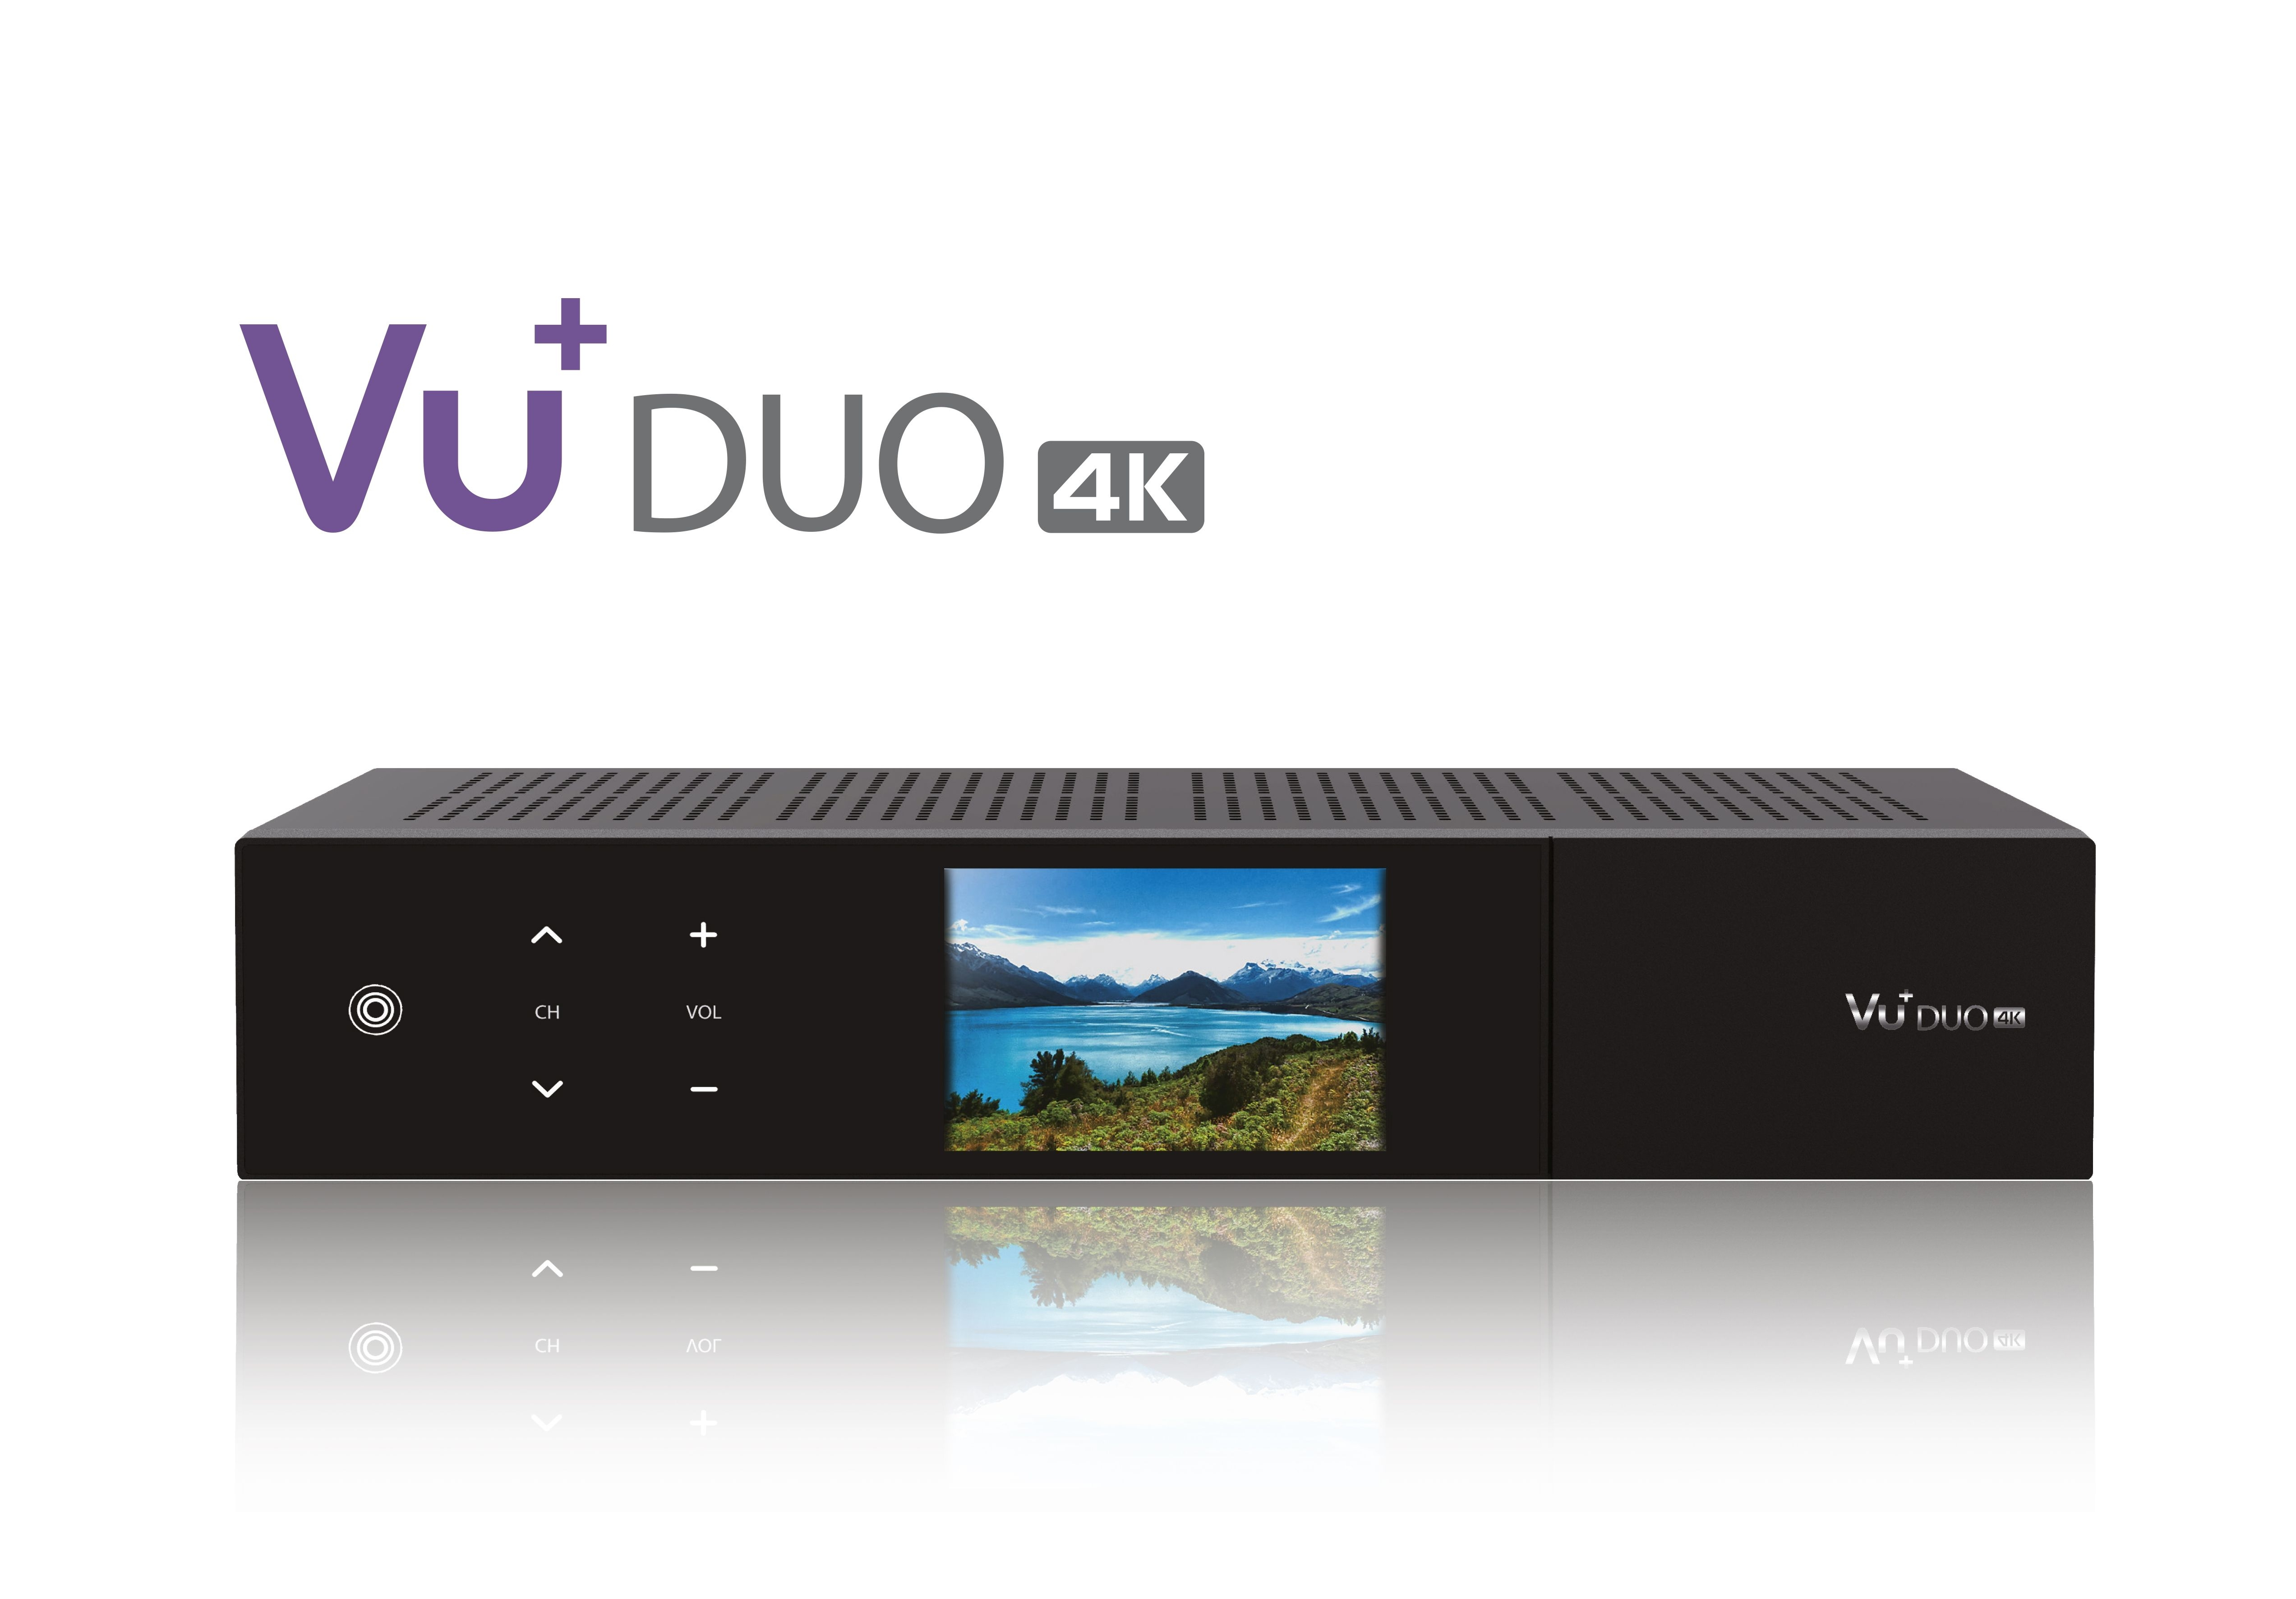 VU+ Duo 4K 1x DVB-S2X FBC Twin / 1x DVB-T2 Dual Tuner PVR ready Linux Receiver UHD 2160p